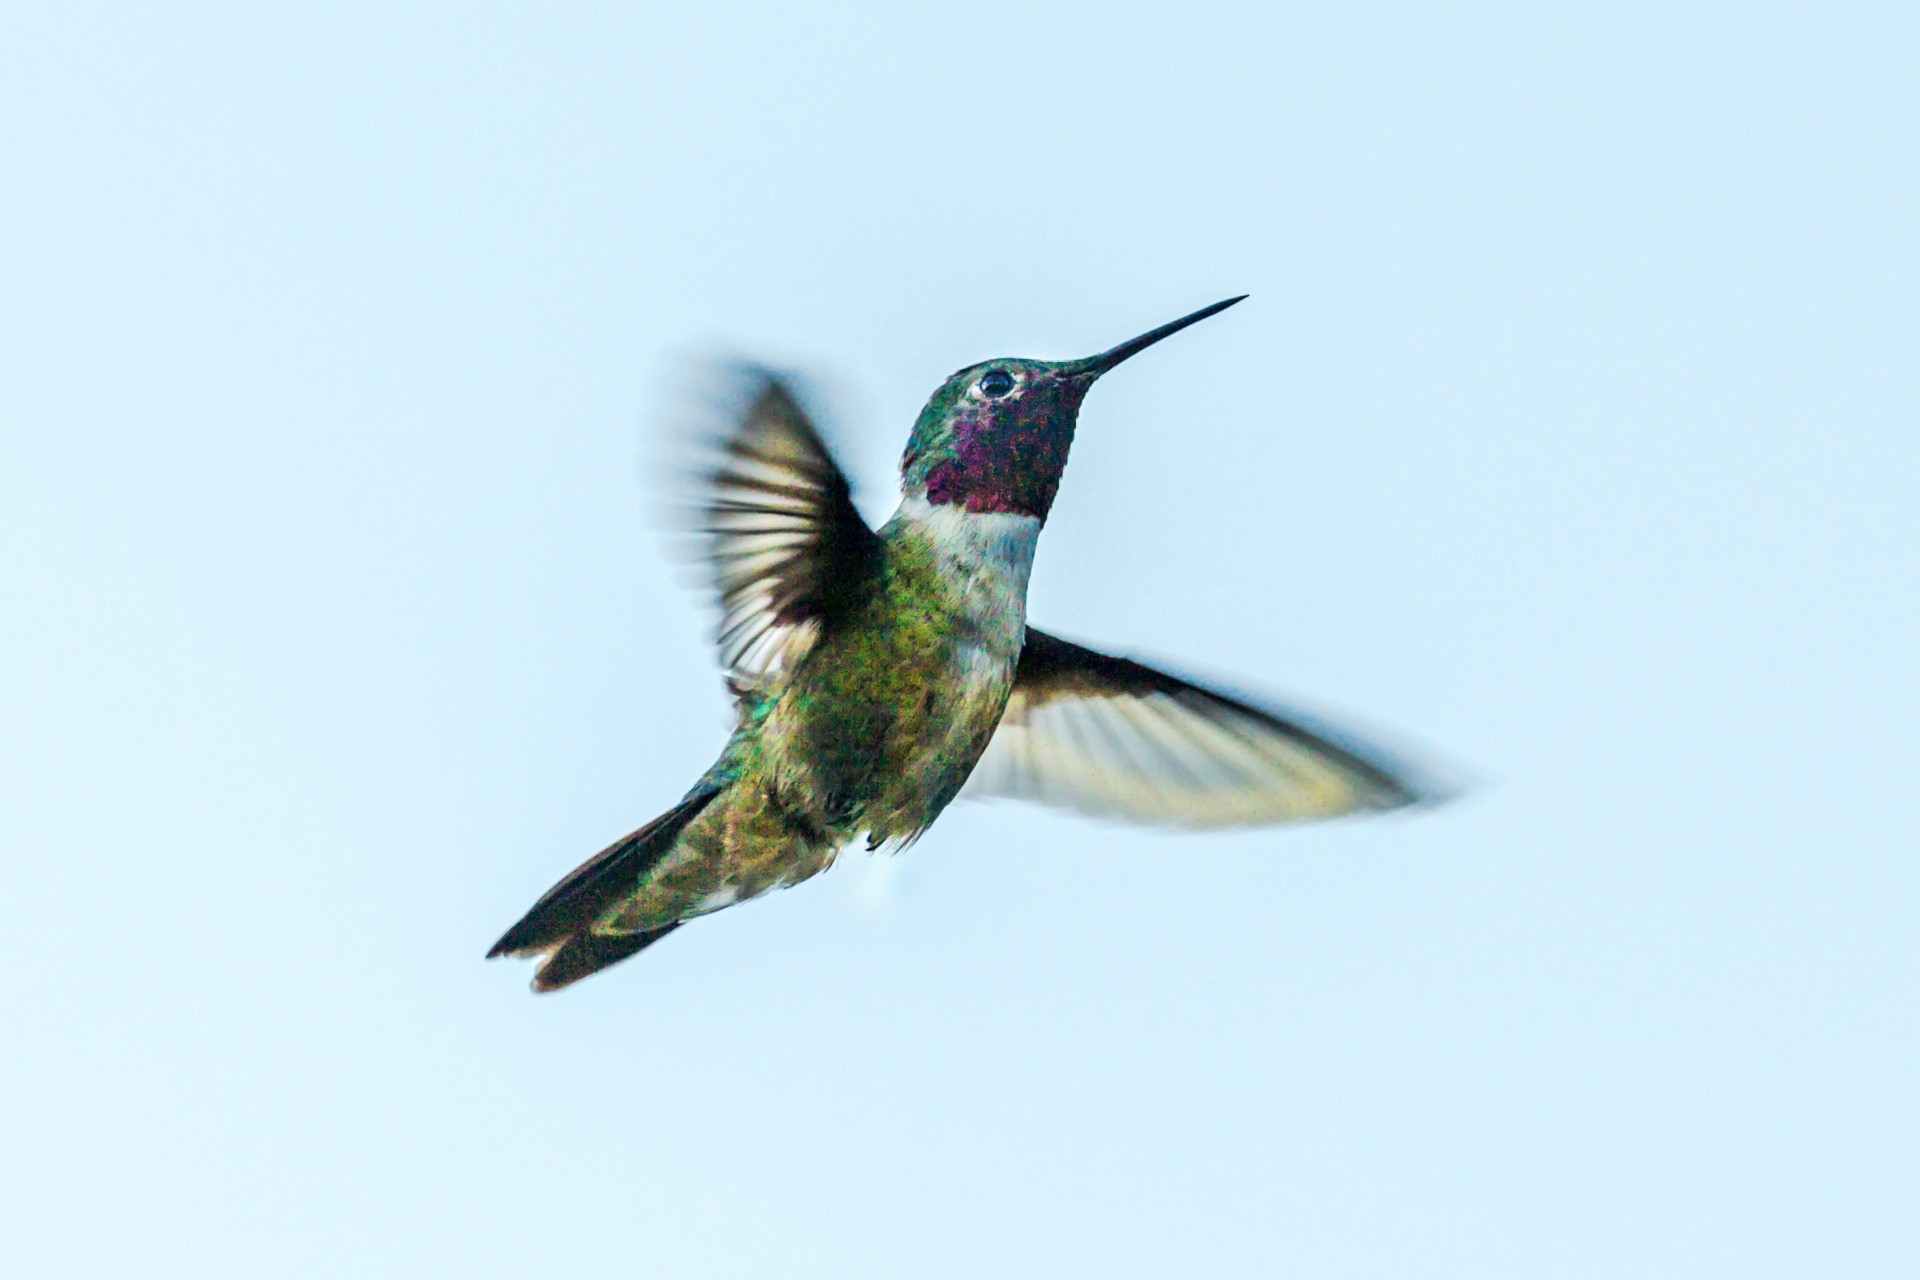 Why Are Hummingbirds Important, and How Can Rooftop Gardens Help Them?   Hummingbirds fall into the pollinator camp, and we need to do all we can to keep pollinators healthy and well.